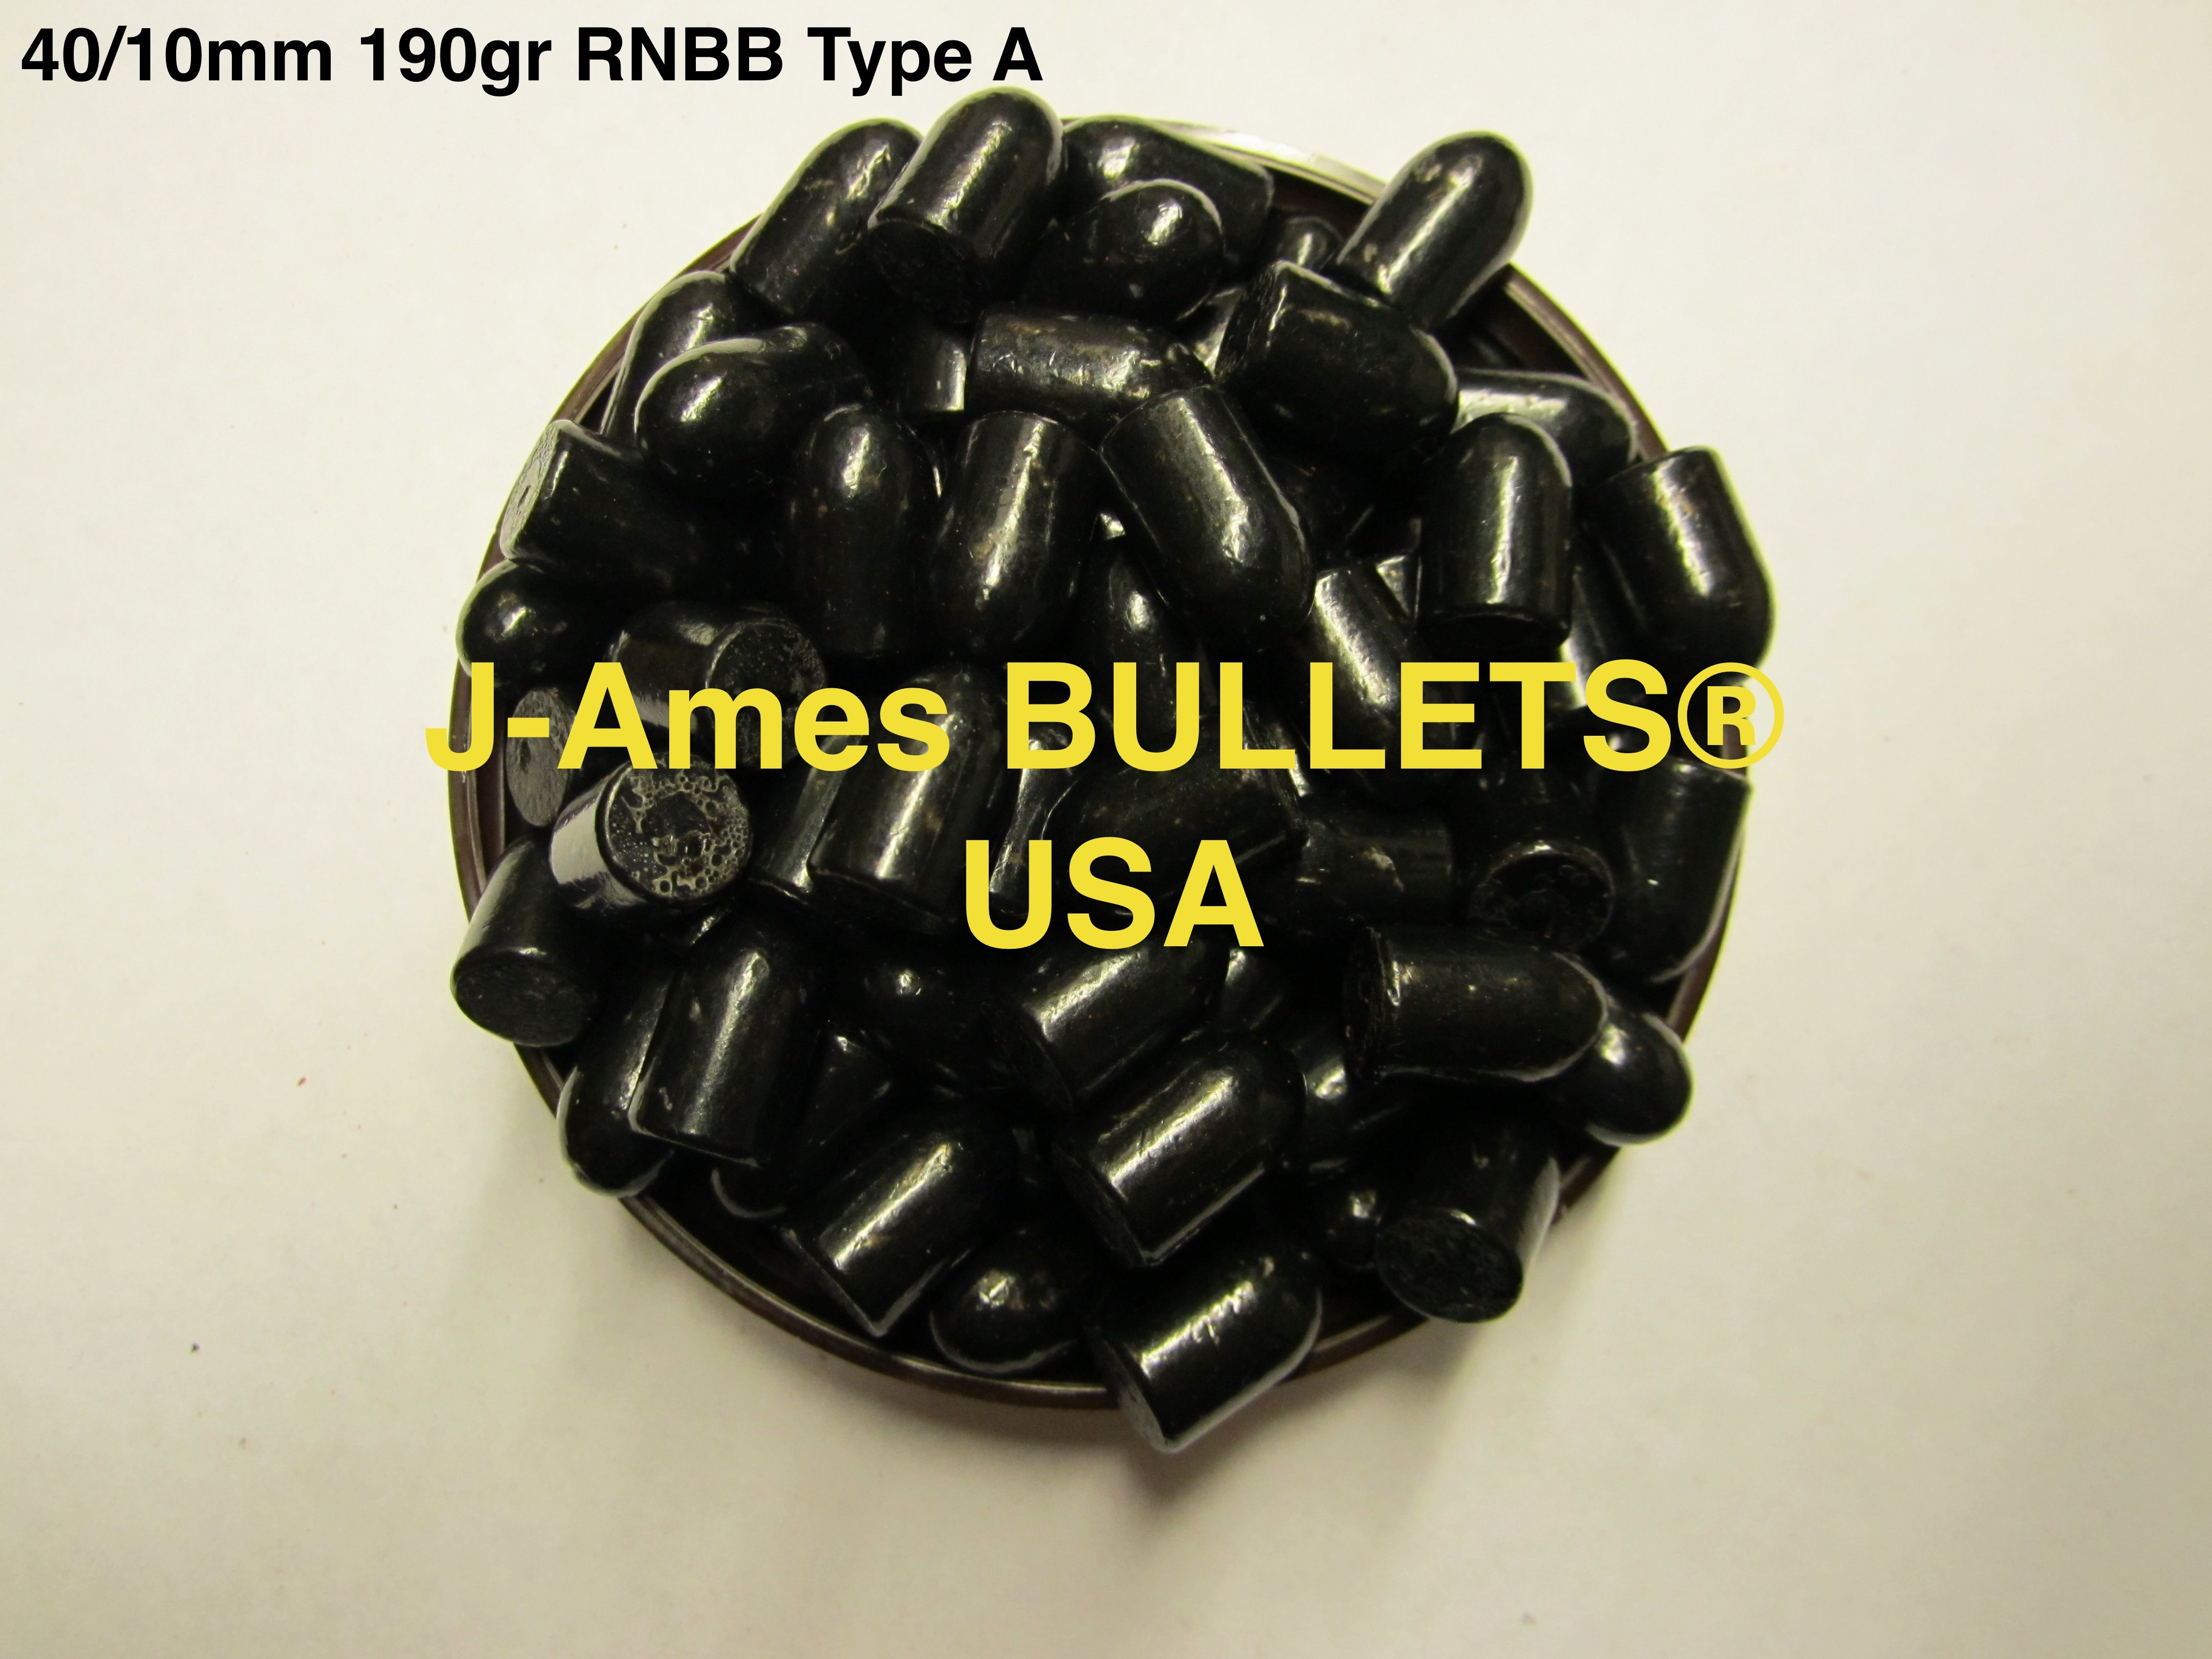 J-Ames BULLETS Extremely accurate New 190gr 40/10mm bullet | J-Ames